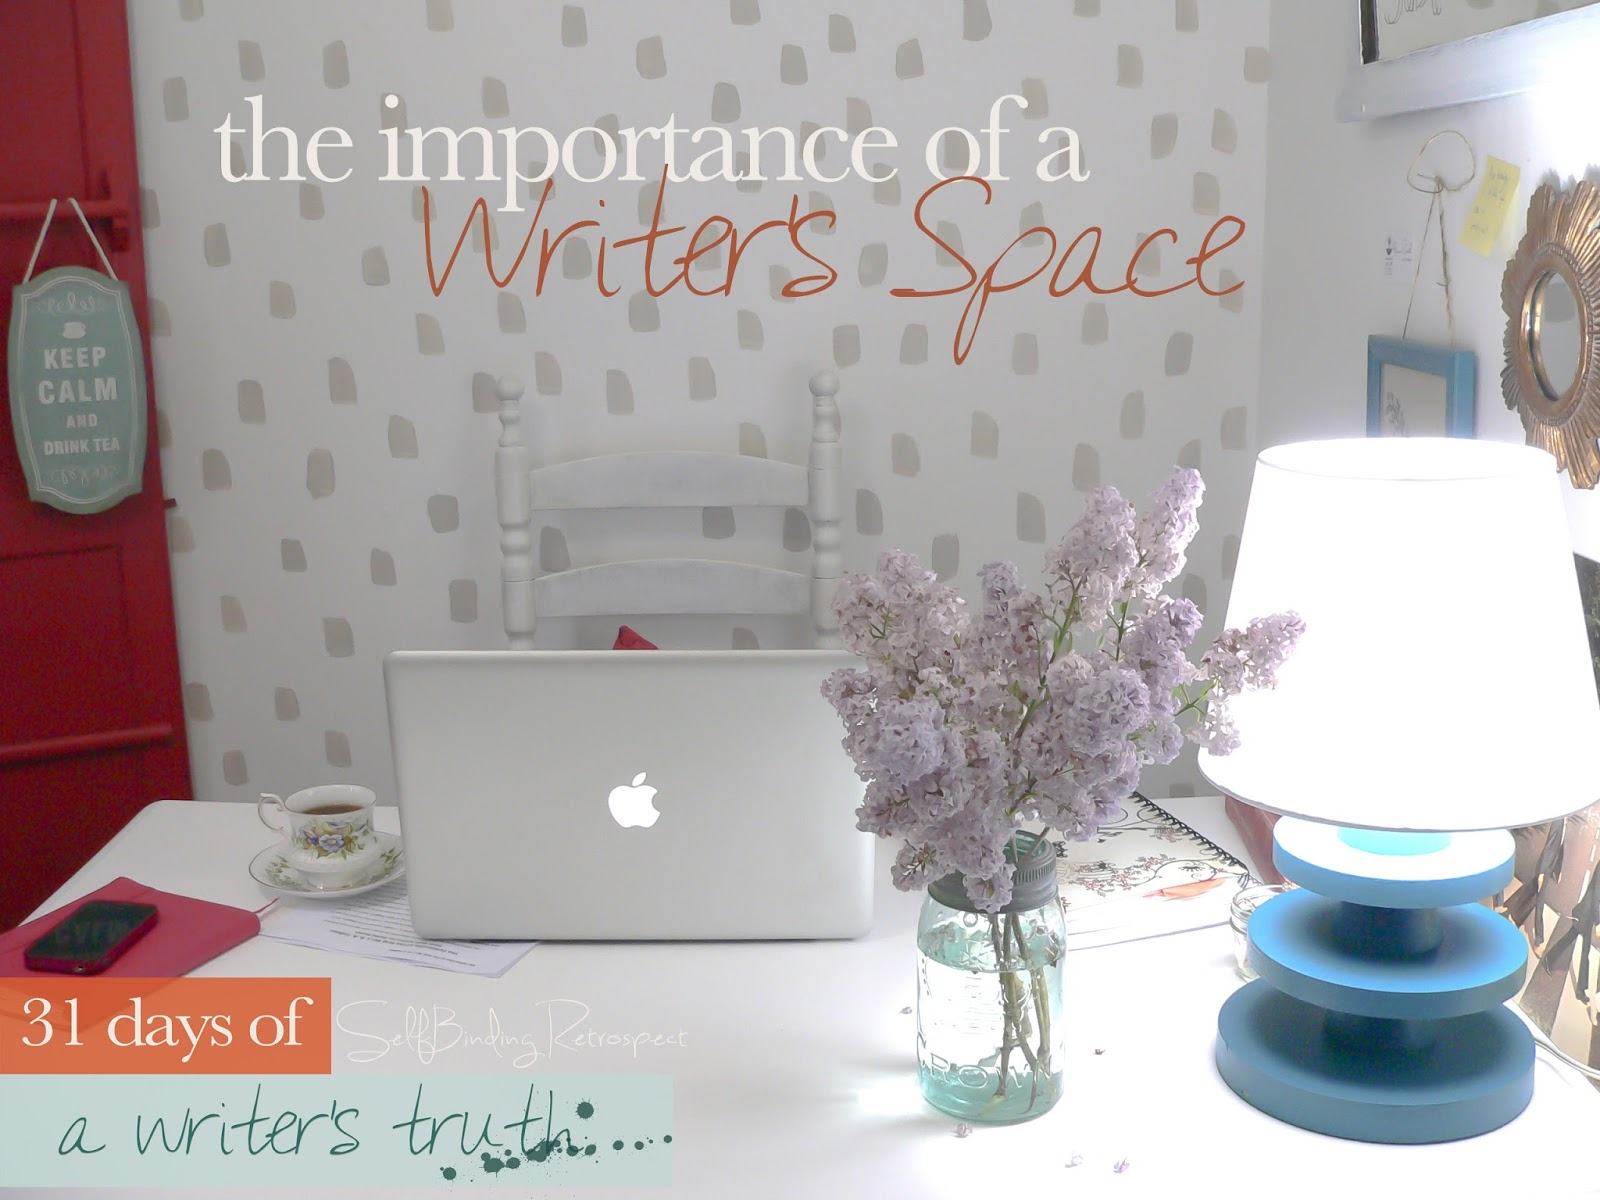 the importance of a writer's space #write31days